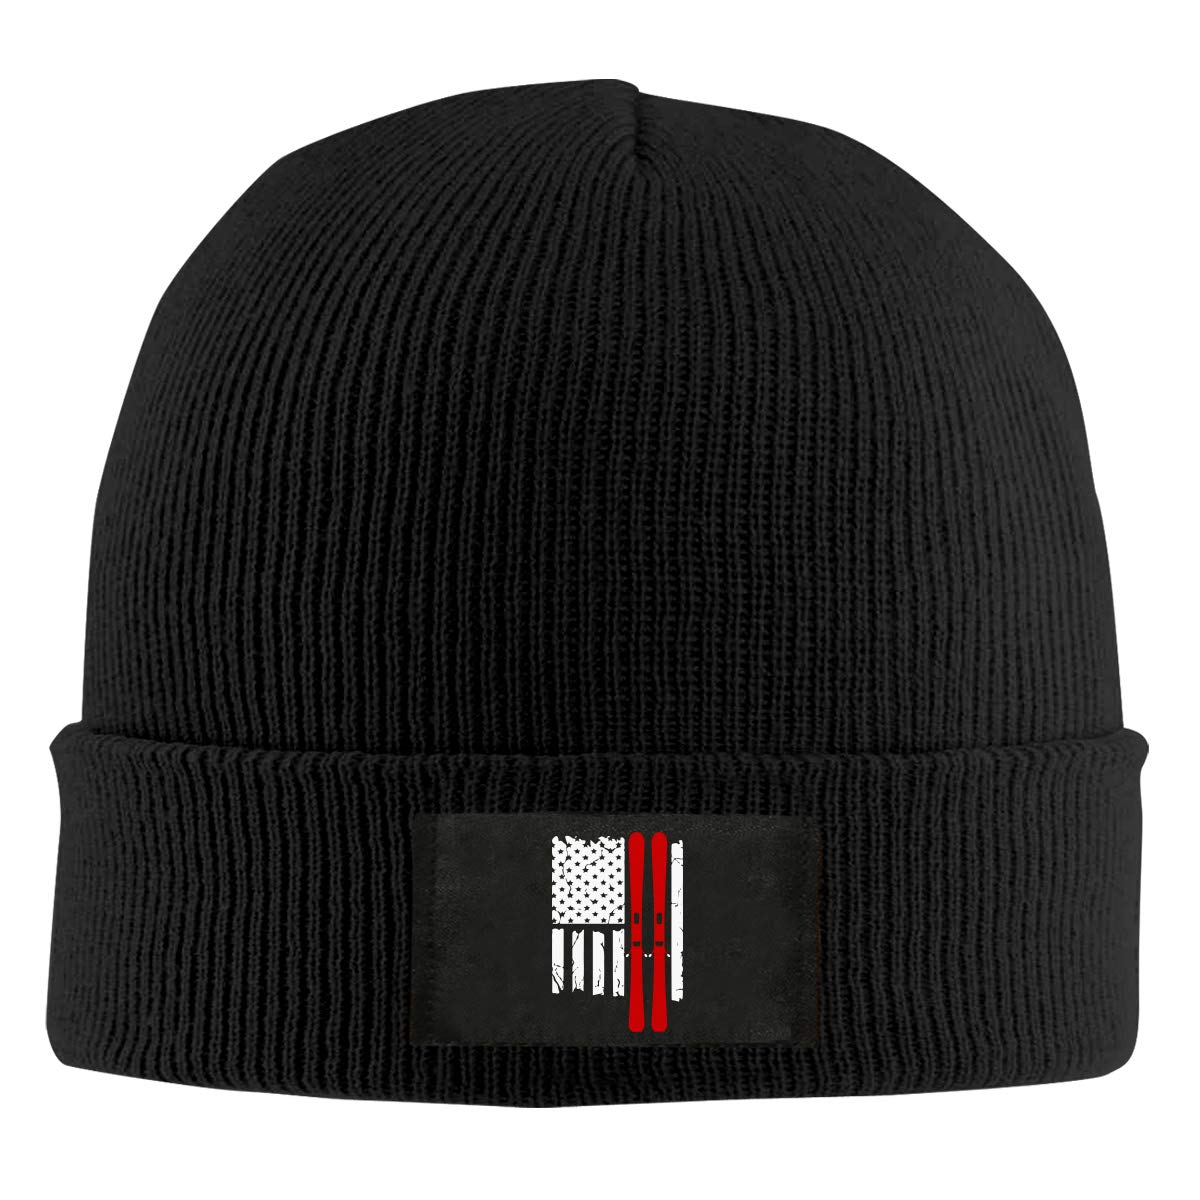 BF5Y6z/&MA Unisex US American Flag Ski Skiing Knitted Cap 100/% Acrylic Thick Skiing Cap